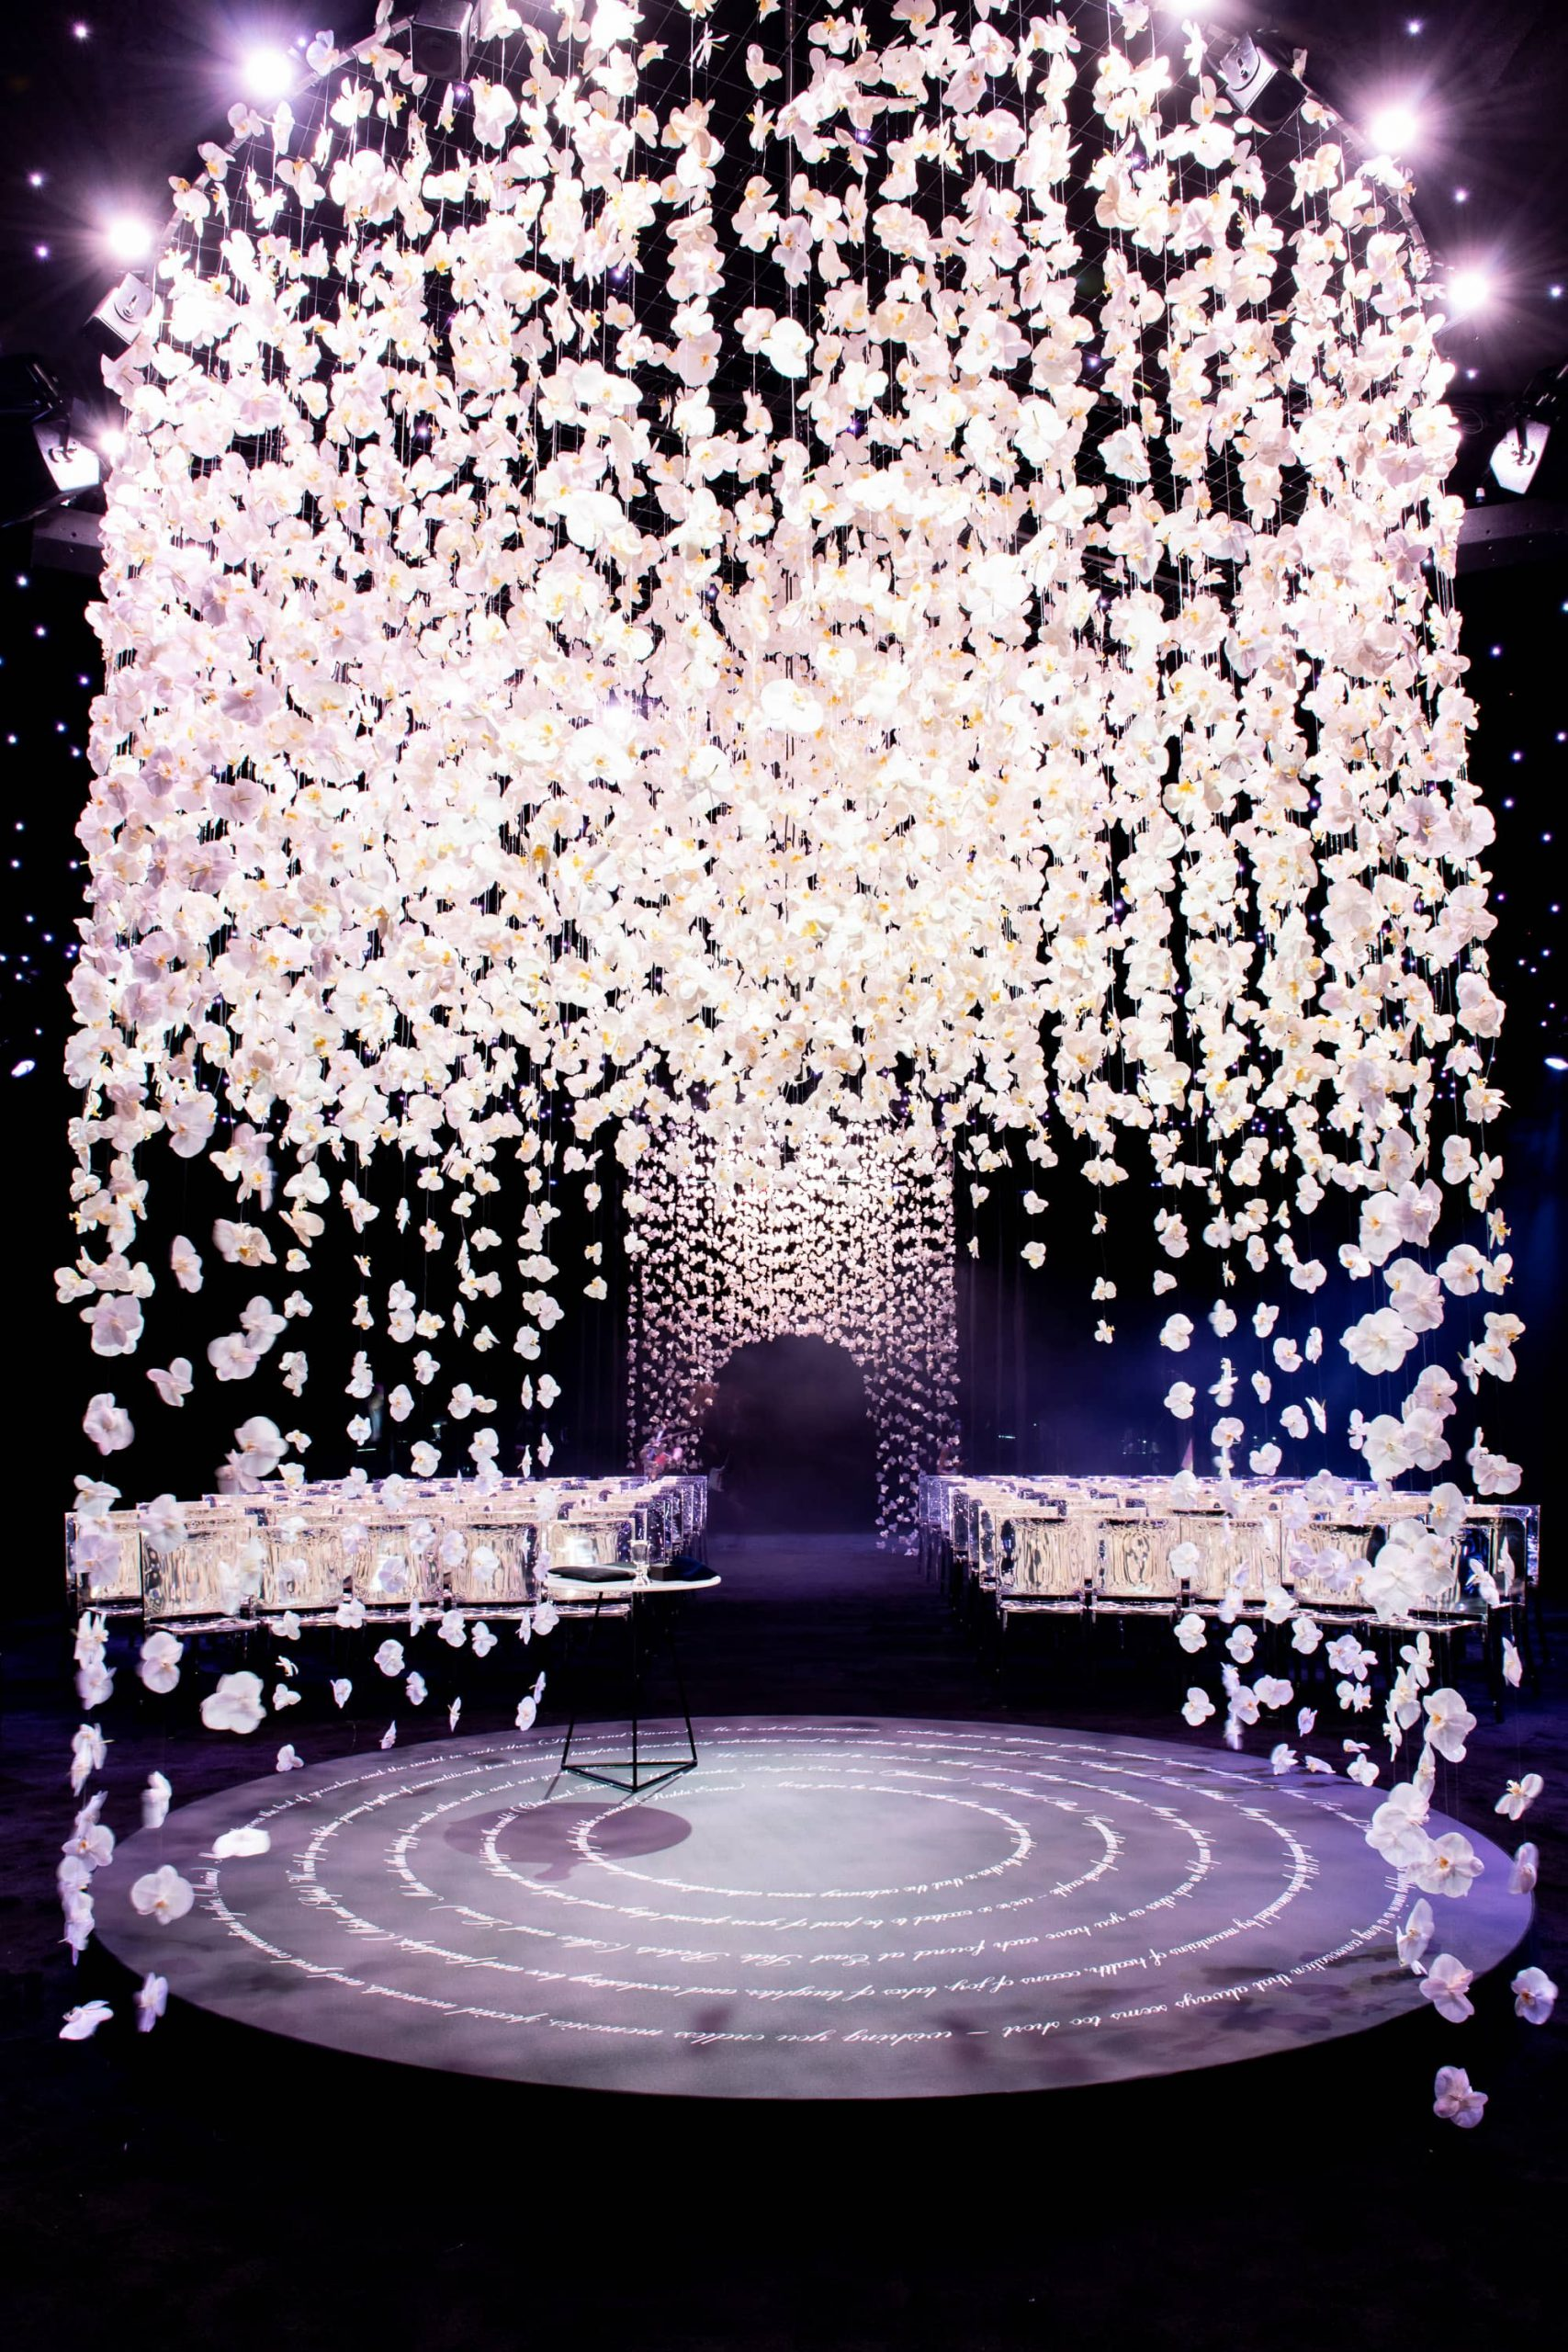 Chuppah made of hanging white orchards at this NYE wedding in New York City | Photo by Gruber Photo